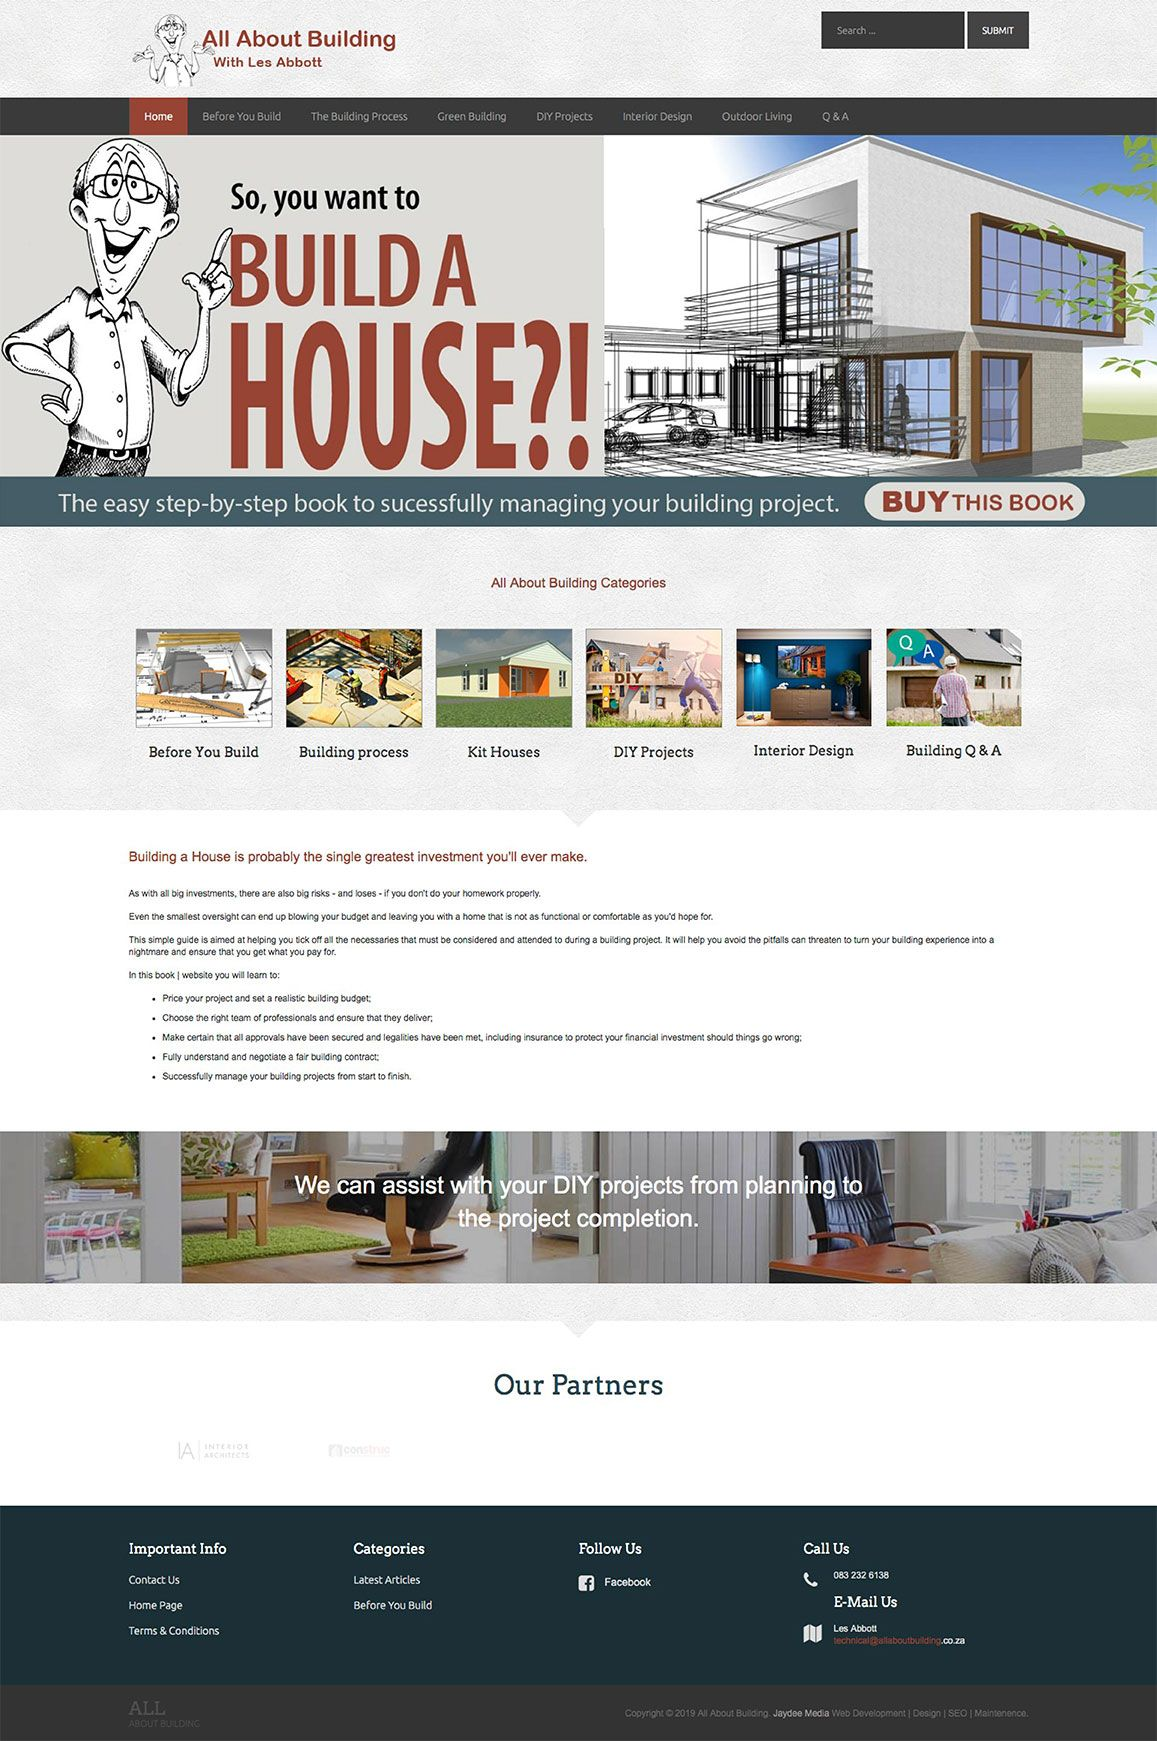 What Is All About Building About With Images Web Development Design Diy Projects Design Diy House Projects